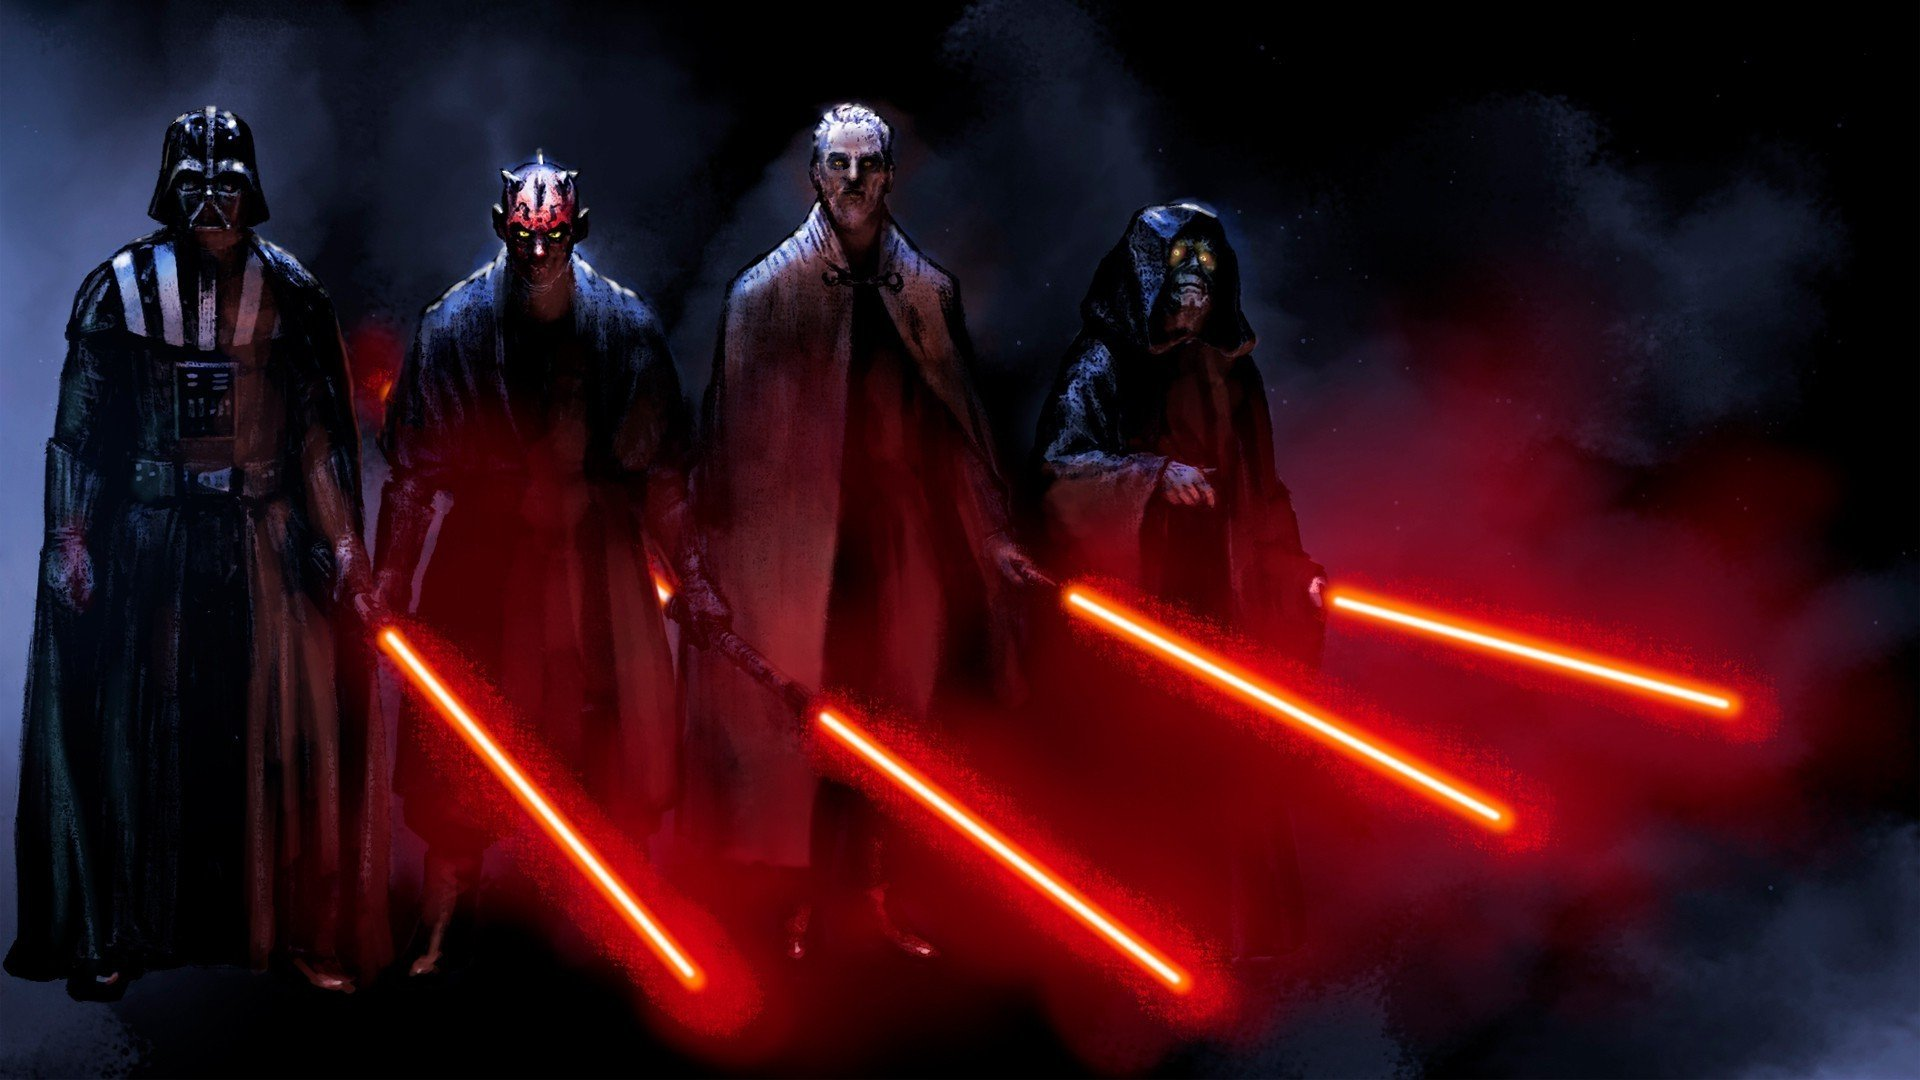 Ideas About Darth Maul Wallpaper On Pinterest Star Wars 1920x1080